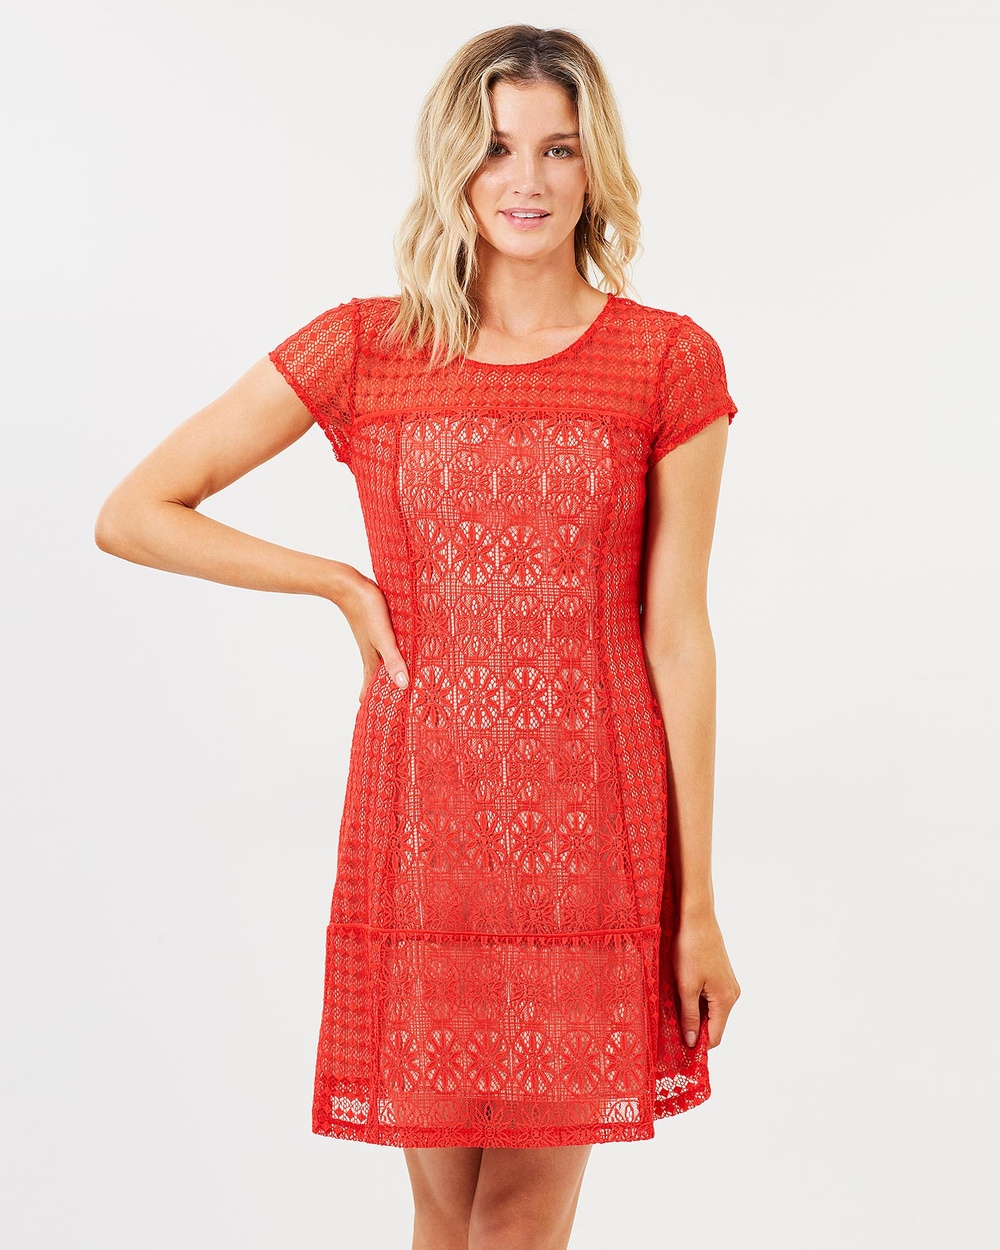 Stella Chelsea Park Dress Dresses Orange Chelsea Park Dress